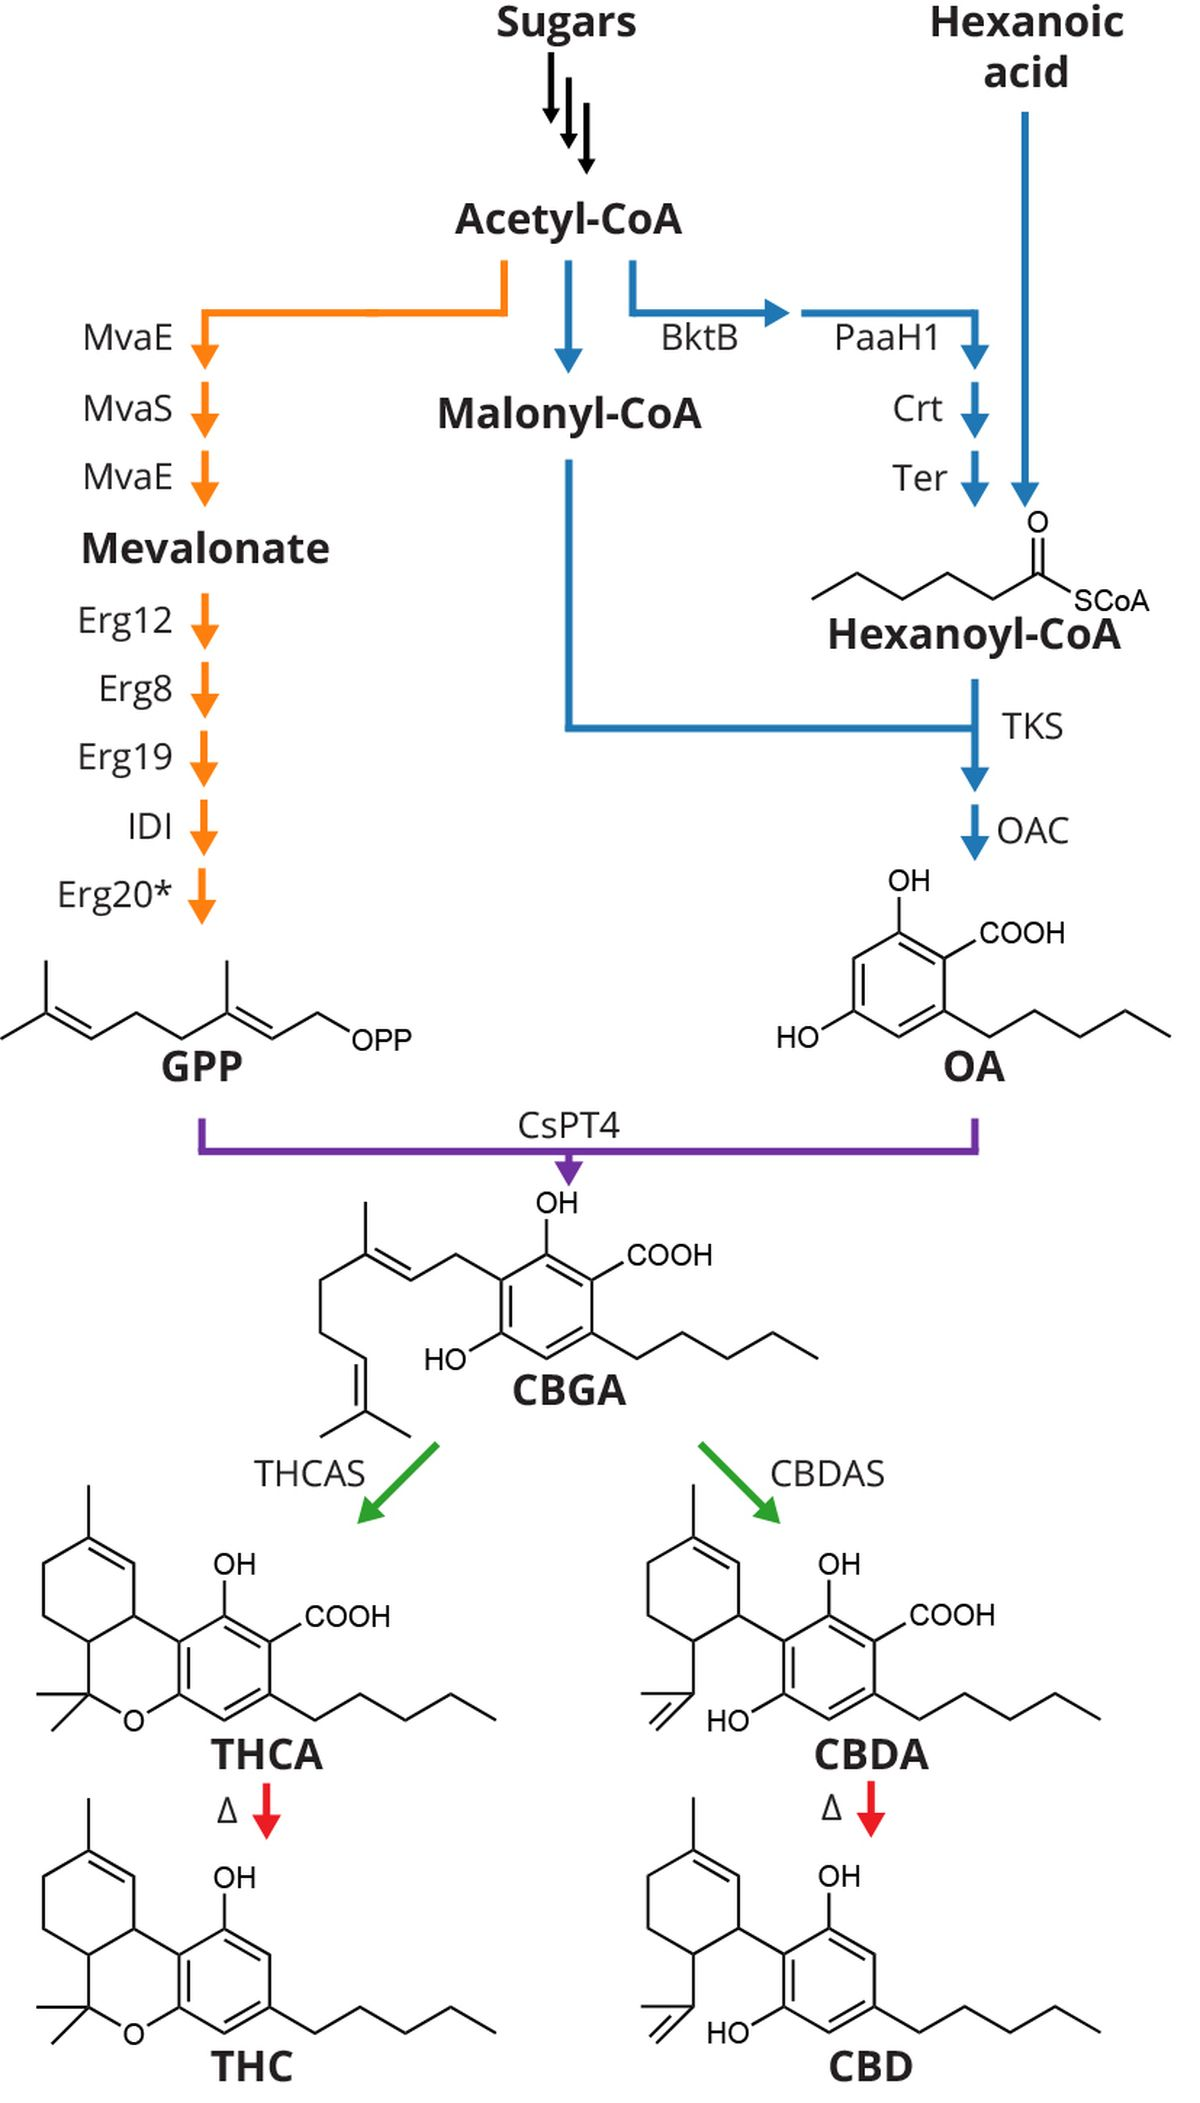 To produce cannabinoids in yeast (Saccharomyces cerevisiae), synthetic biologists at UC Berkeley first engineered the native yeast mevalonate pathway to provide high flux of geranyl pyrophosphate (GPP) and introduced a hexanoyl-CoA biosynthesis combining genes from five different bacteria. They then introduced cannabis genes encoding enzymes involved in the biosynthesis of olivetolic acid (OA), a prenyltransferase (CsPT4) enzyme and as yet undiscovered cannabinoid synthases. Synthases converted cannabigerolic acid (CBGA) to cannabinoid acids THCA and CBDA, which on exposure to heat decarboxylate to tetrahydrocannabinol (THC) and cannabidiol (CBD), respectively - Credit: Jay Keasling lab , UC Berkeley